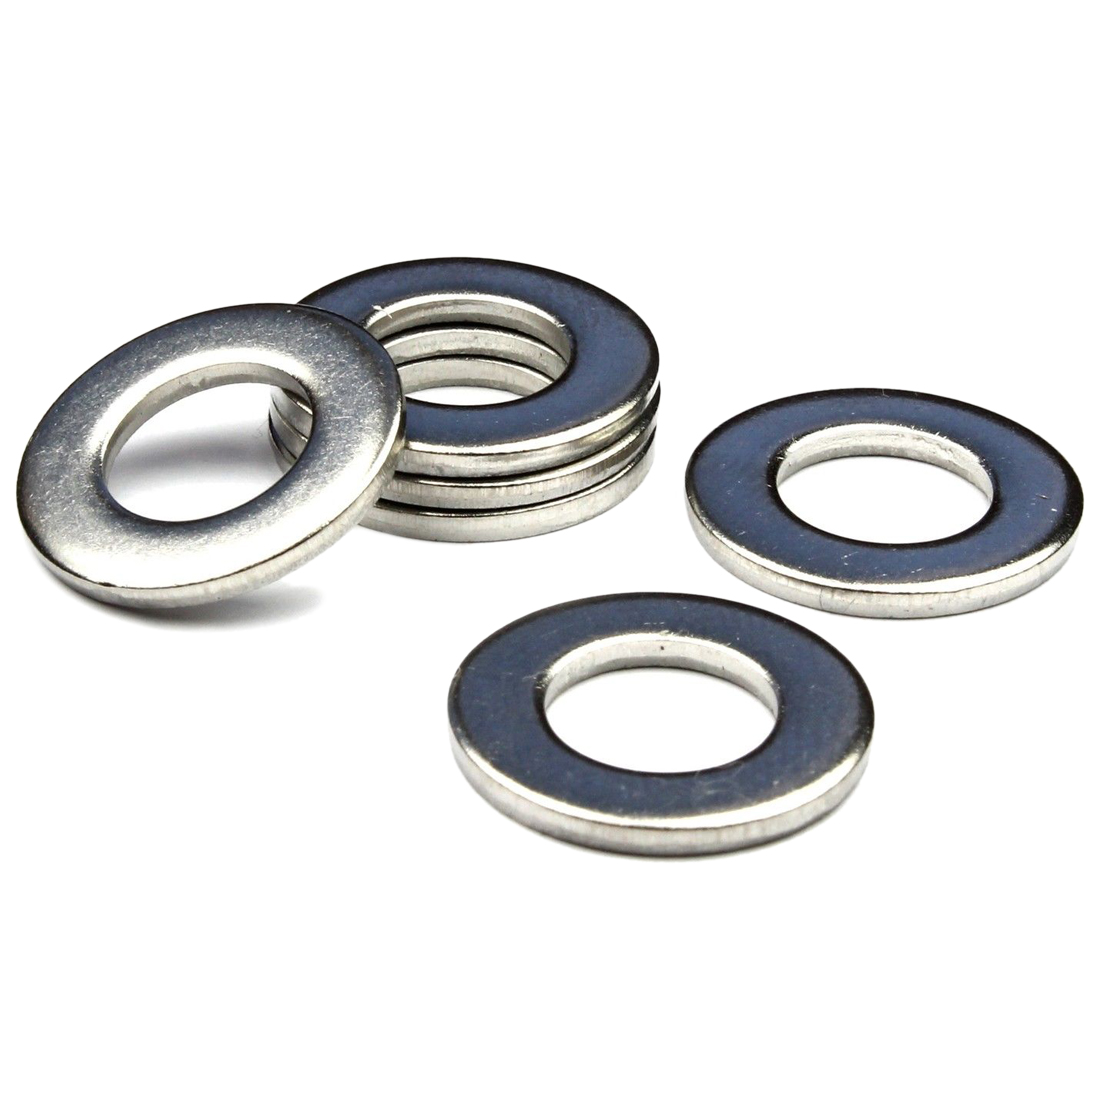 Stainless steel Form a flat washers to fit Metric Bolts & Screws M20 21mm*37mm*3mm 50pcs 50pcs tip107 to 220